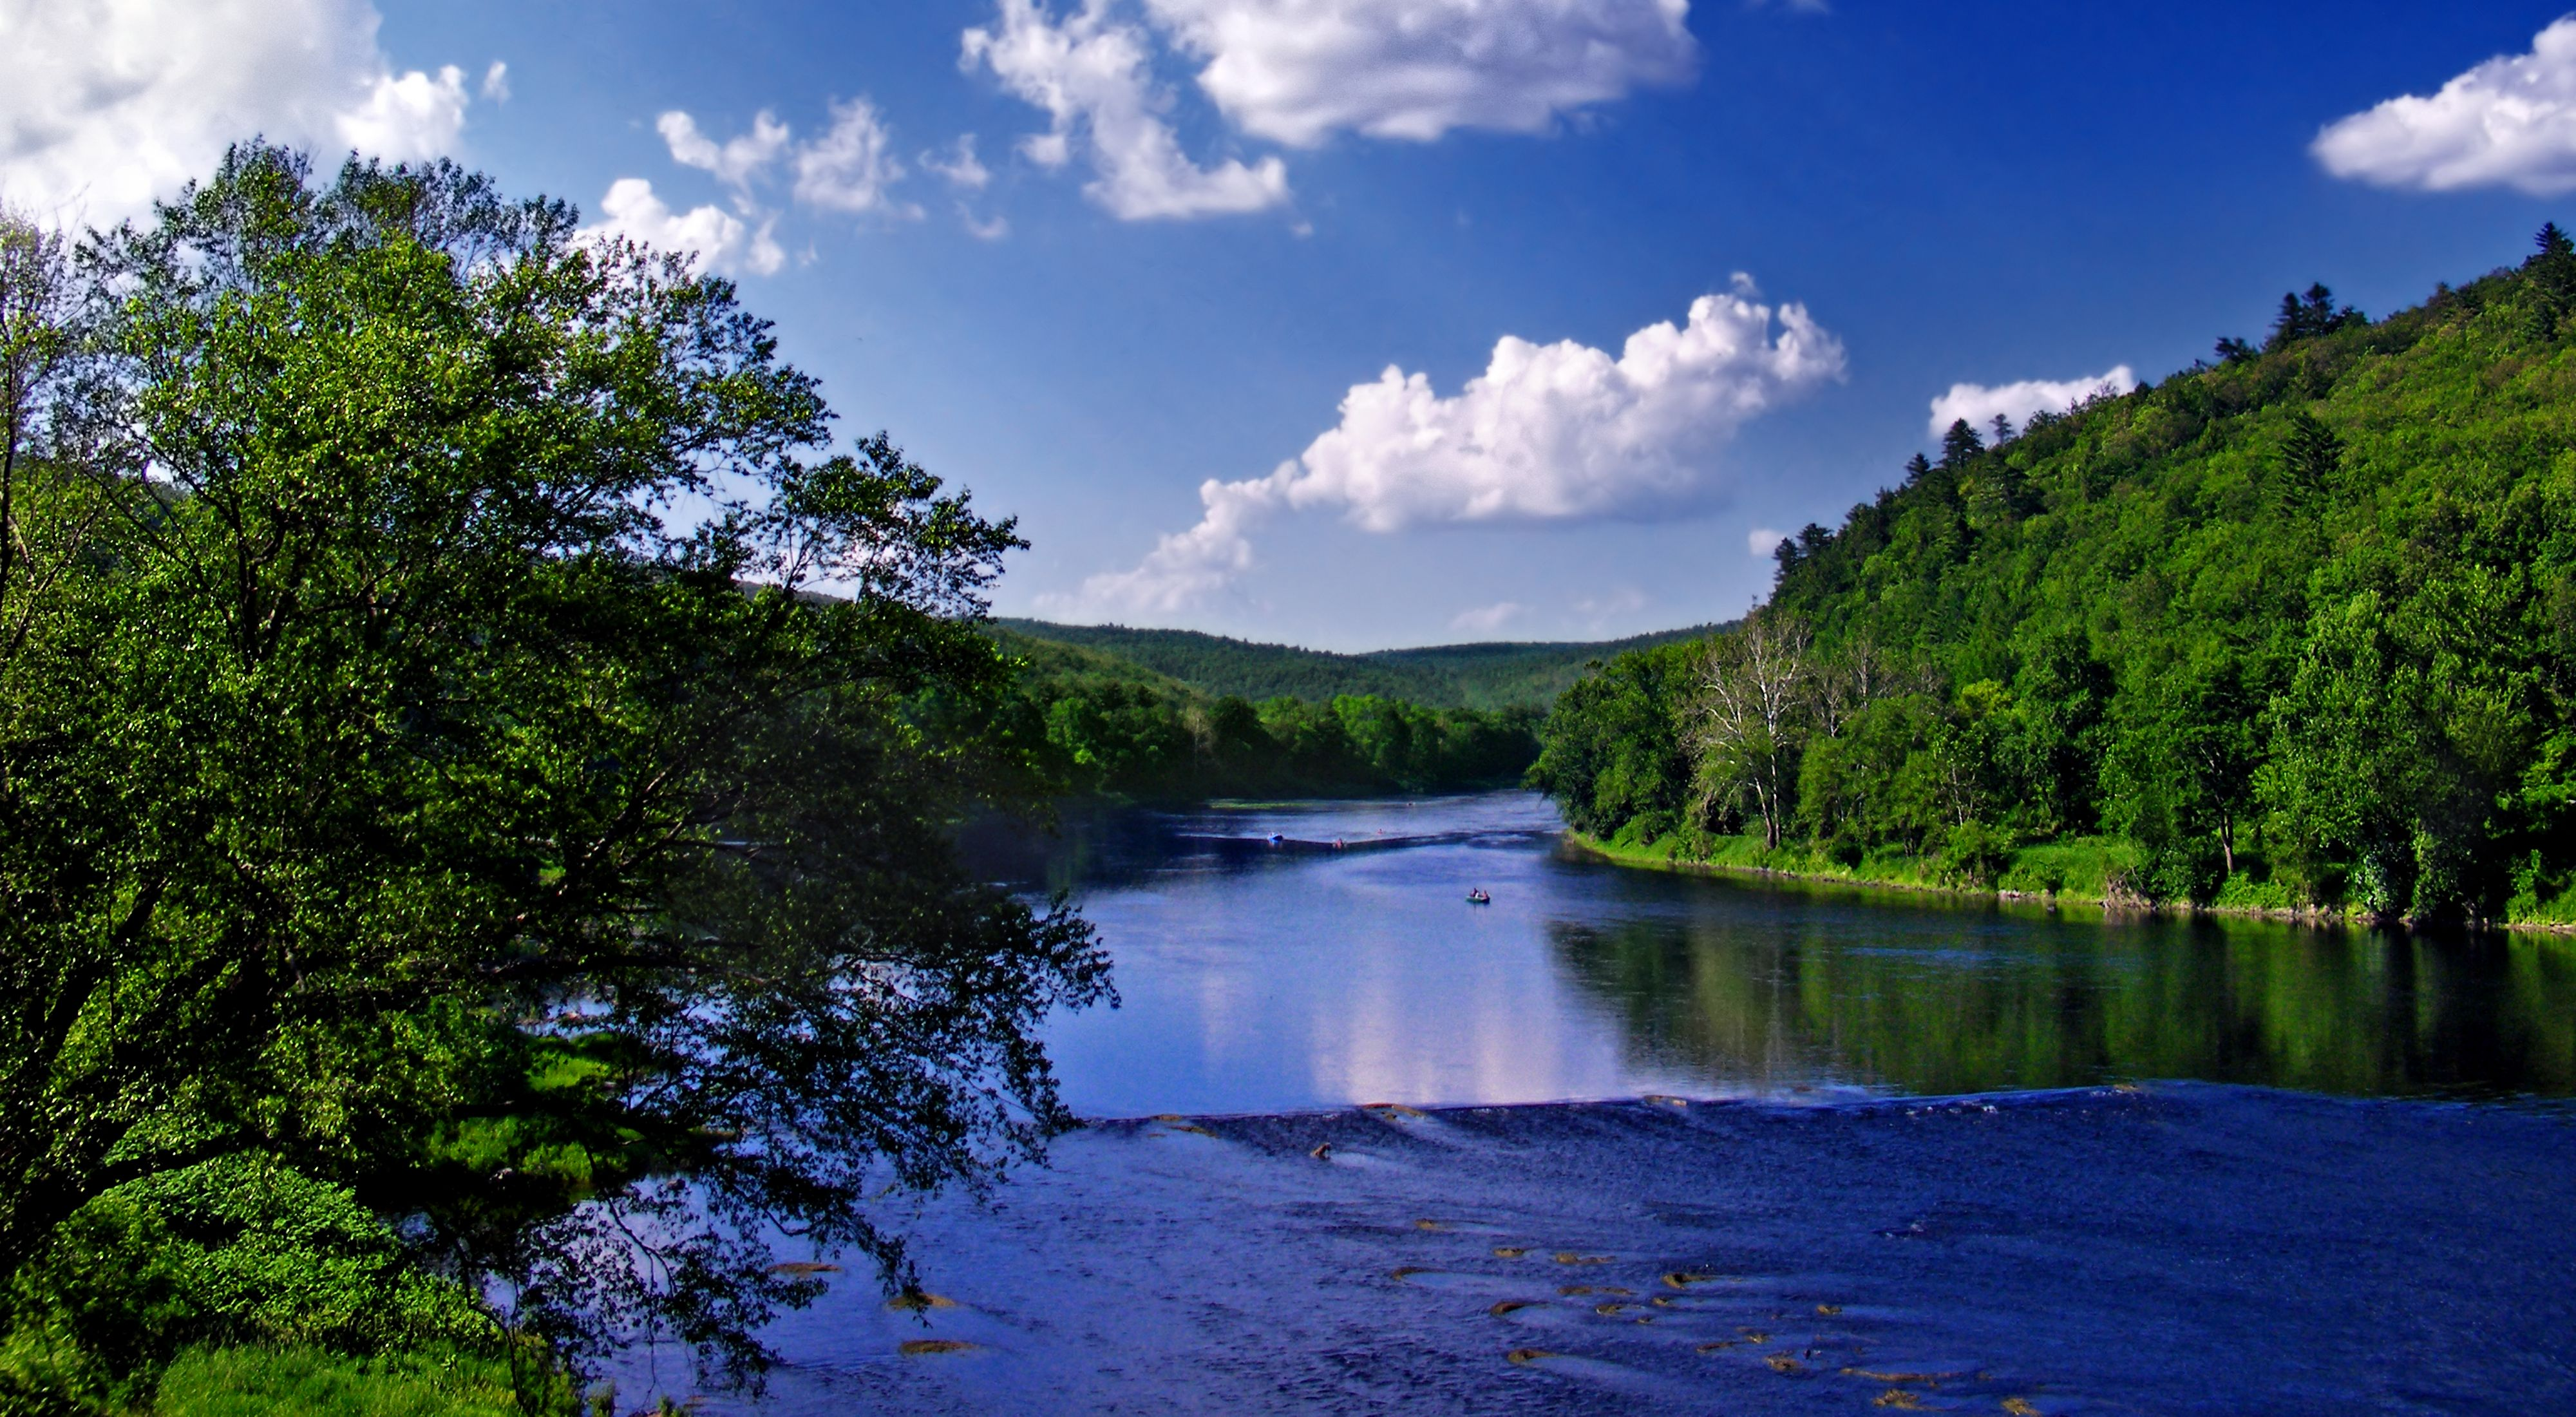 A wide river stretches to the horizon flowing between banks lined with abundant trees under a blue sky and puffy white clouds.